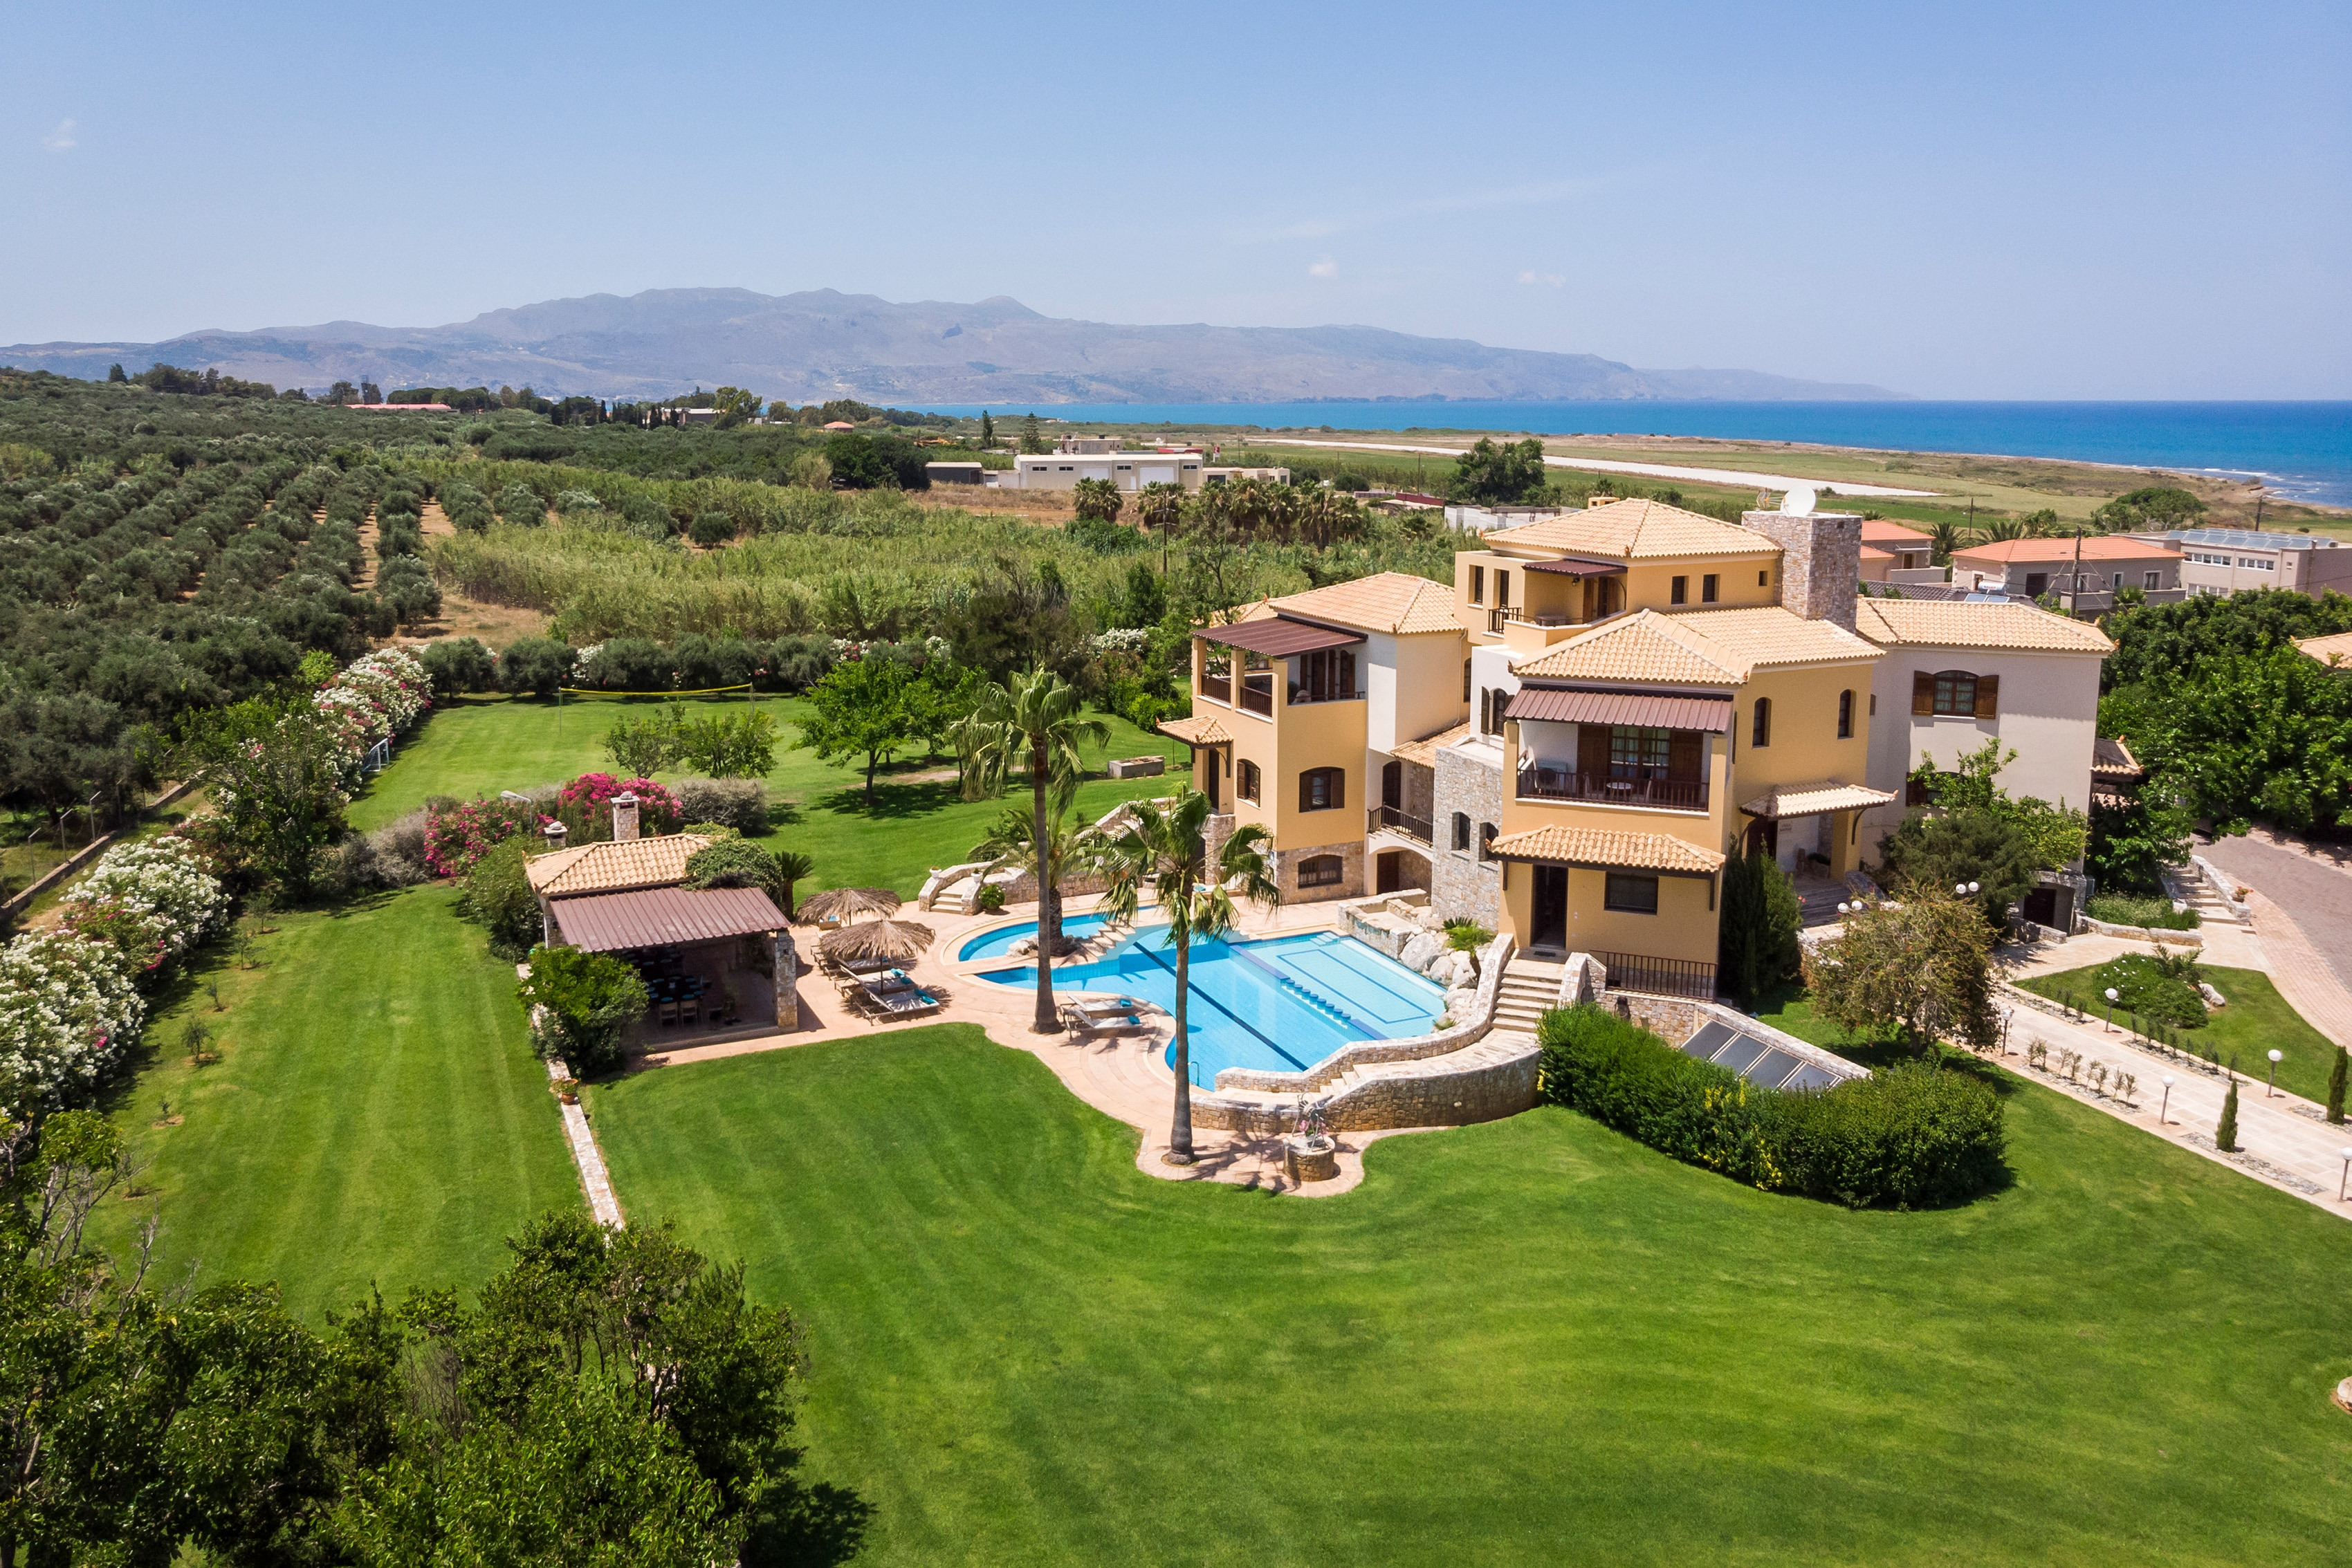 Property Image 1 - Elegant villa with large terraces and private pool